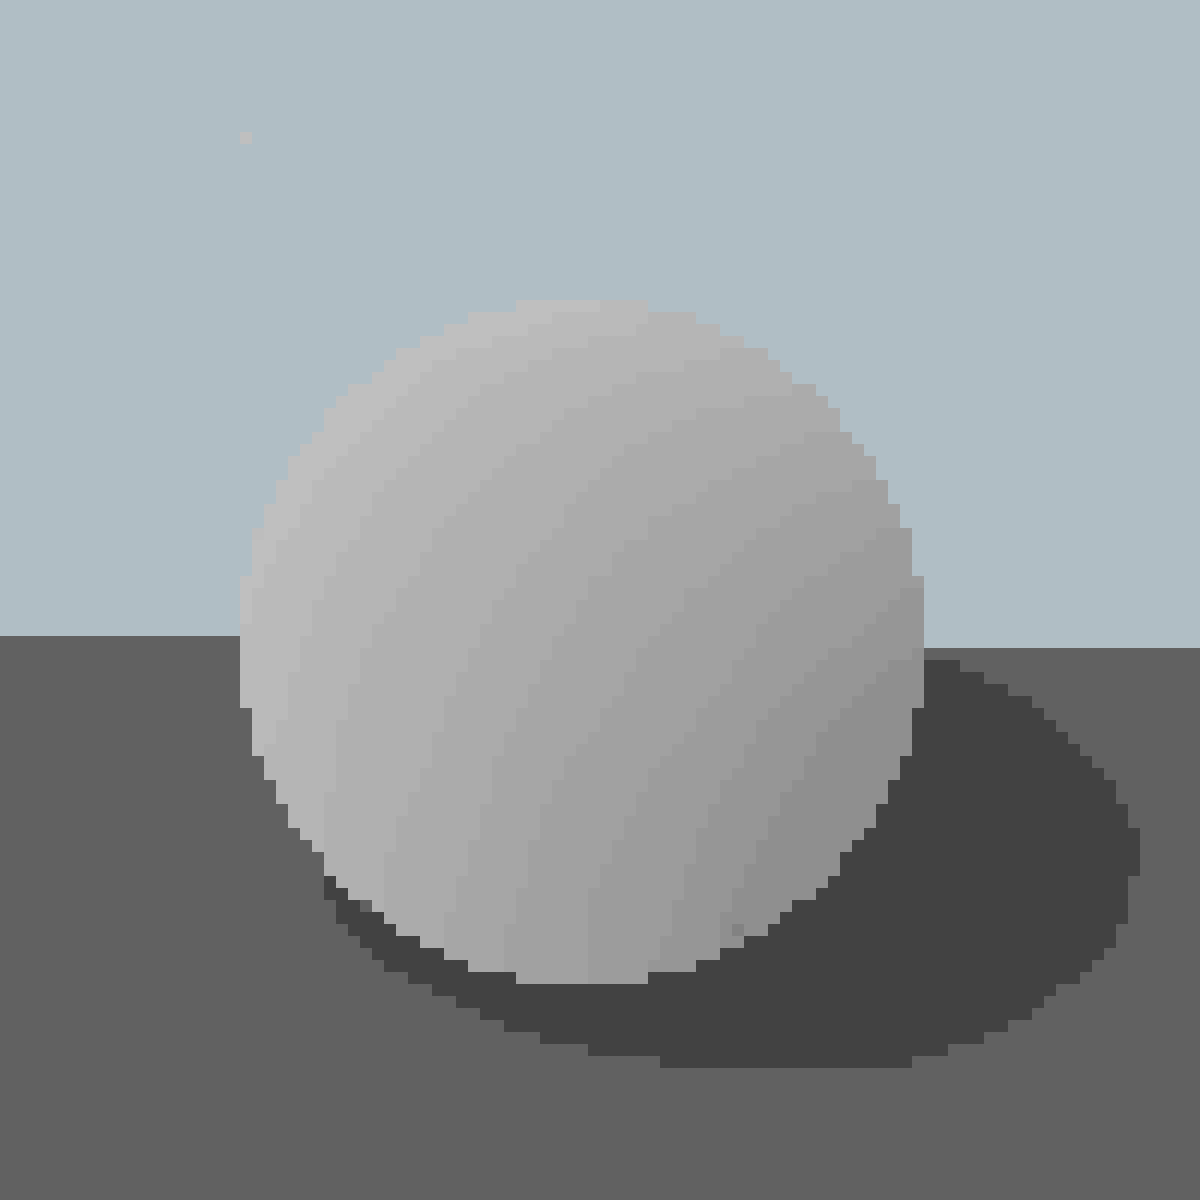 3D Sphere by Pixil4life